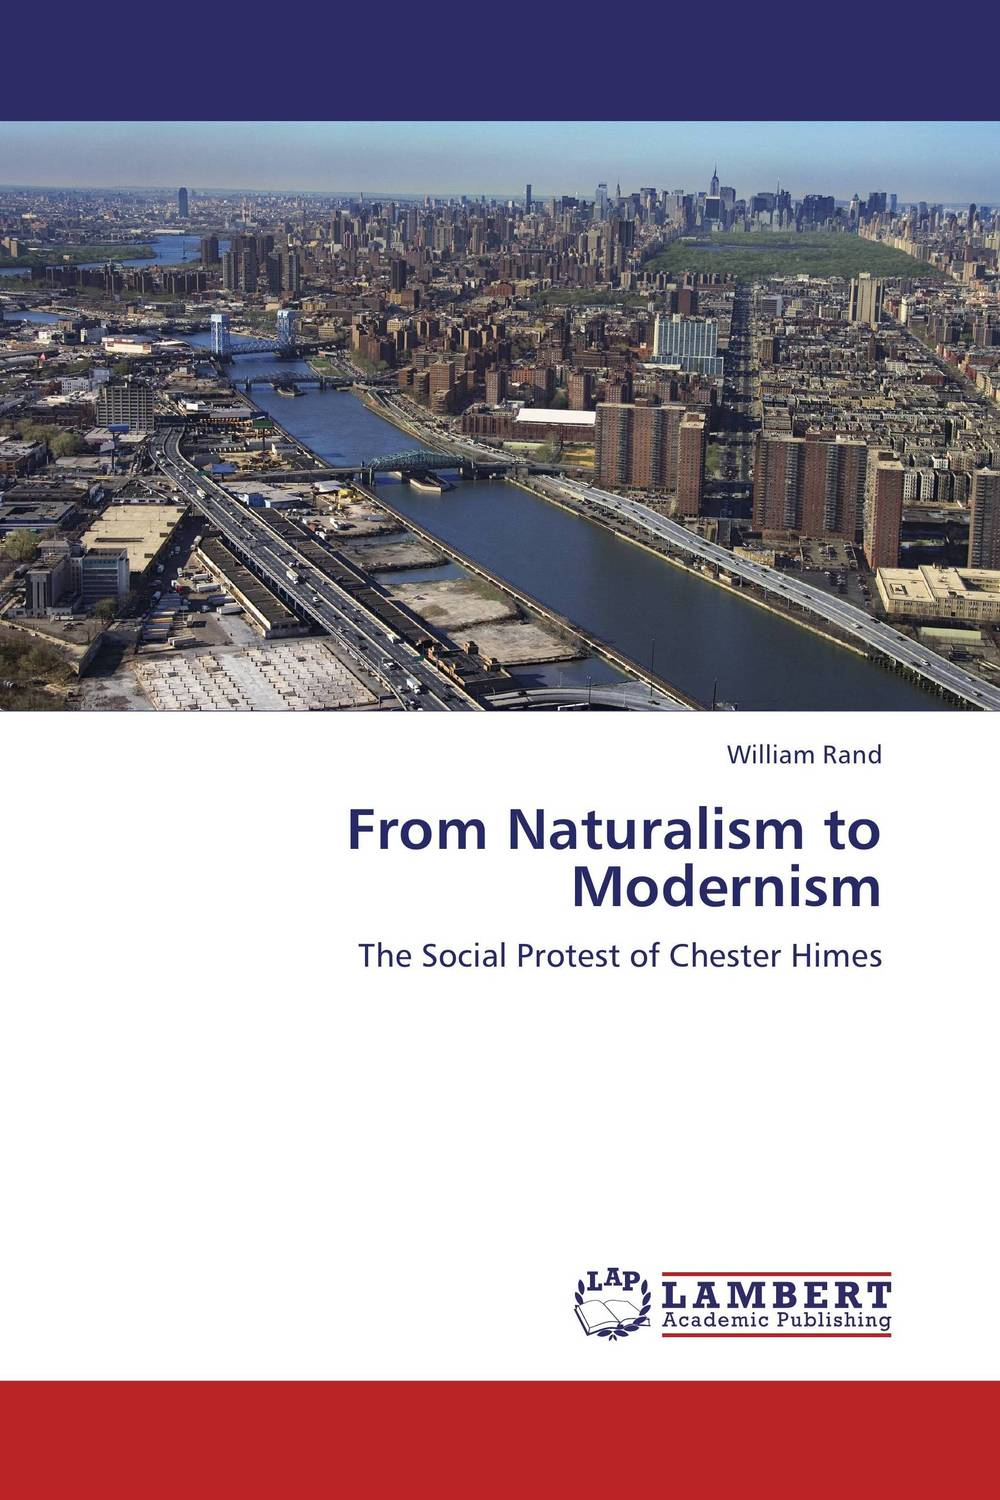 From Naturalism to Modernism norms of nature – naturalism